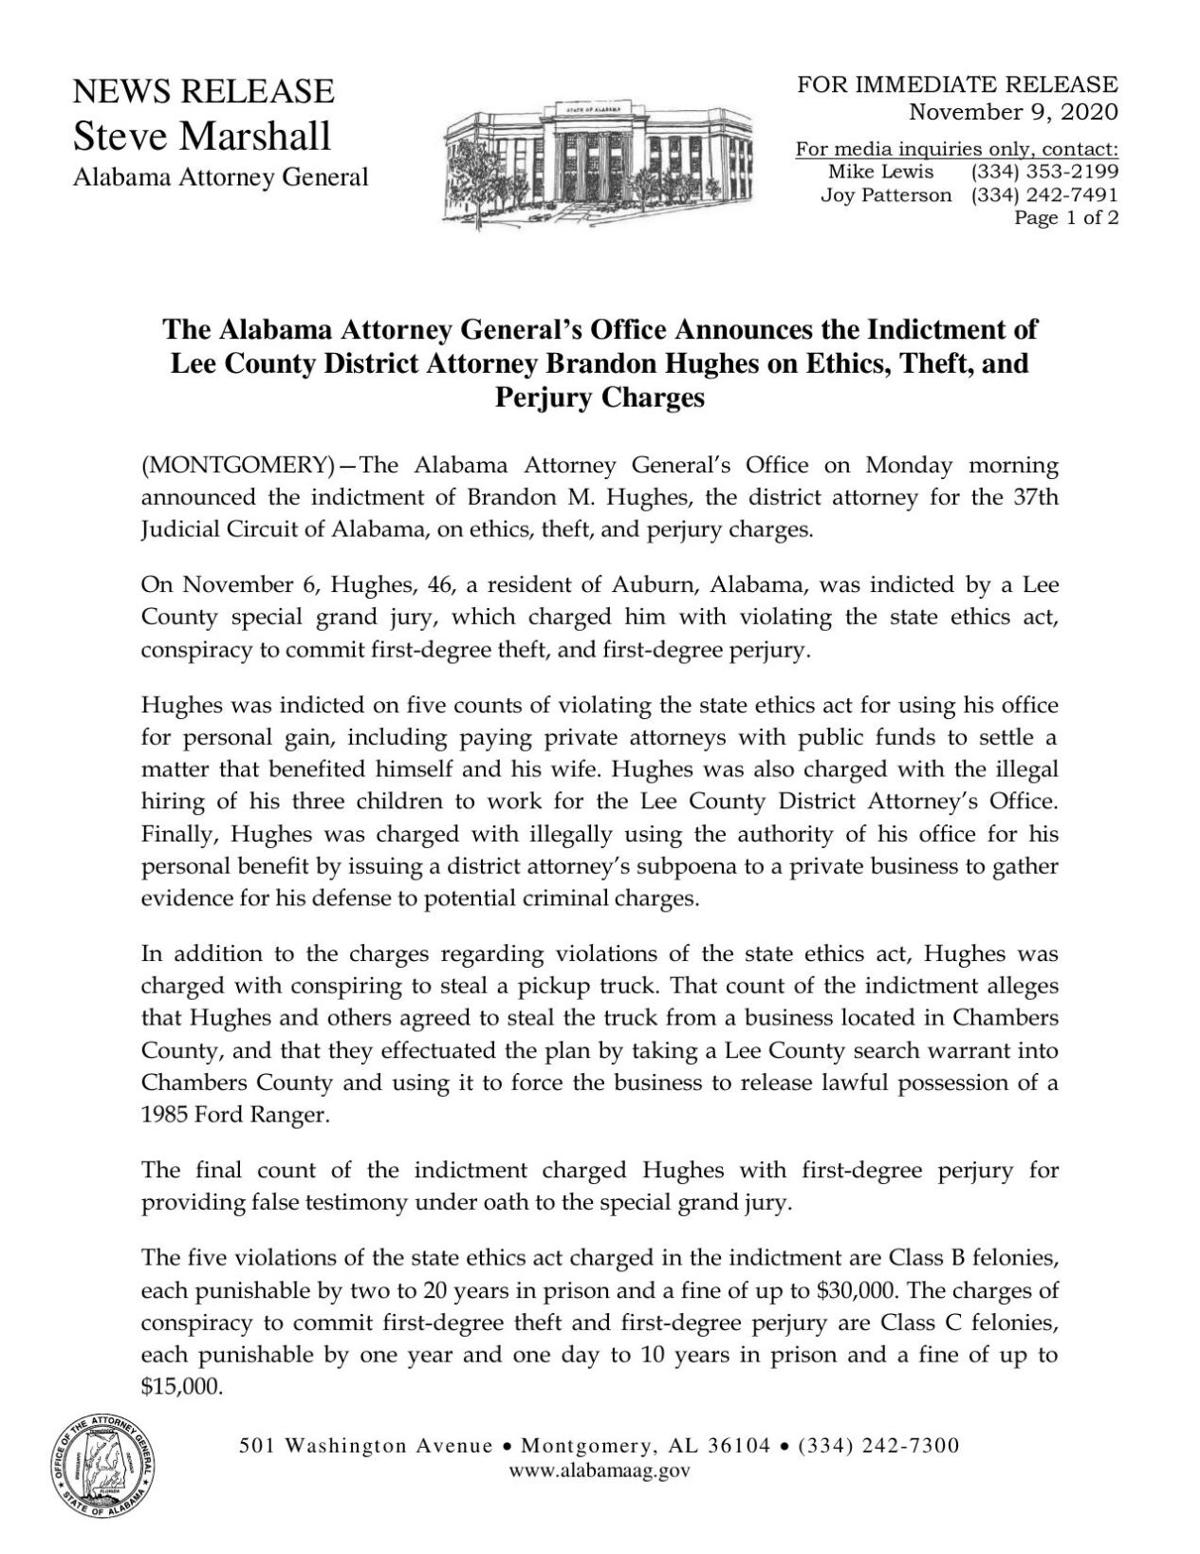 Attorney Generals Office Announces Ethics Indictment of Lee County District Attorney Brandon Hughes.pdf